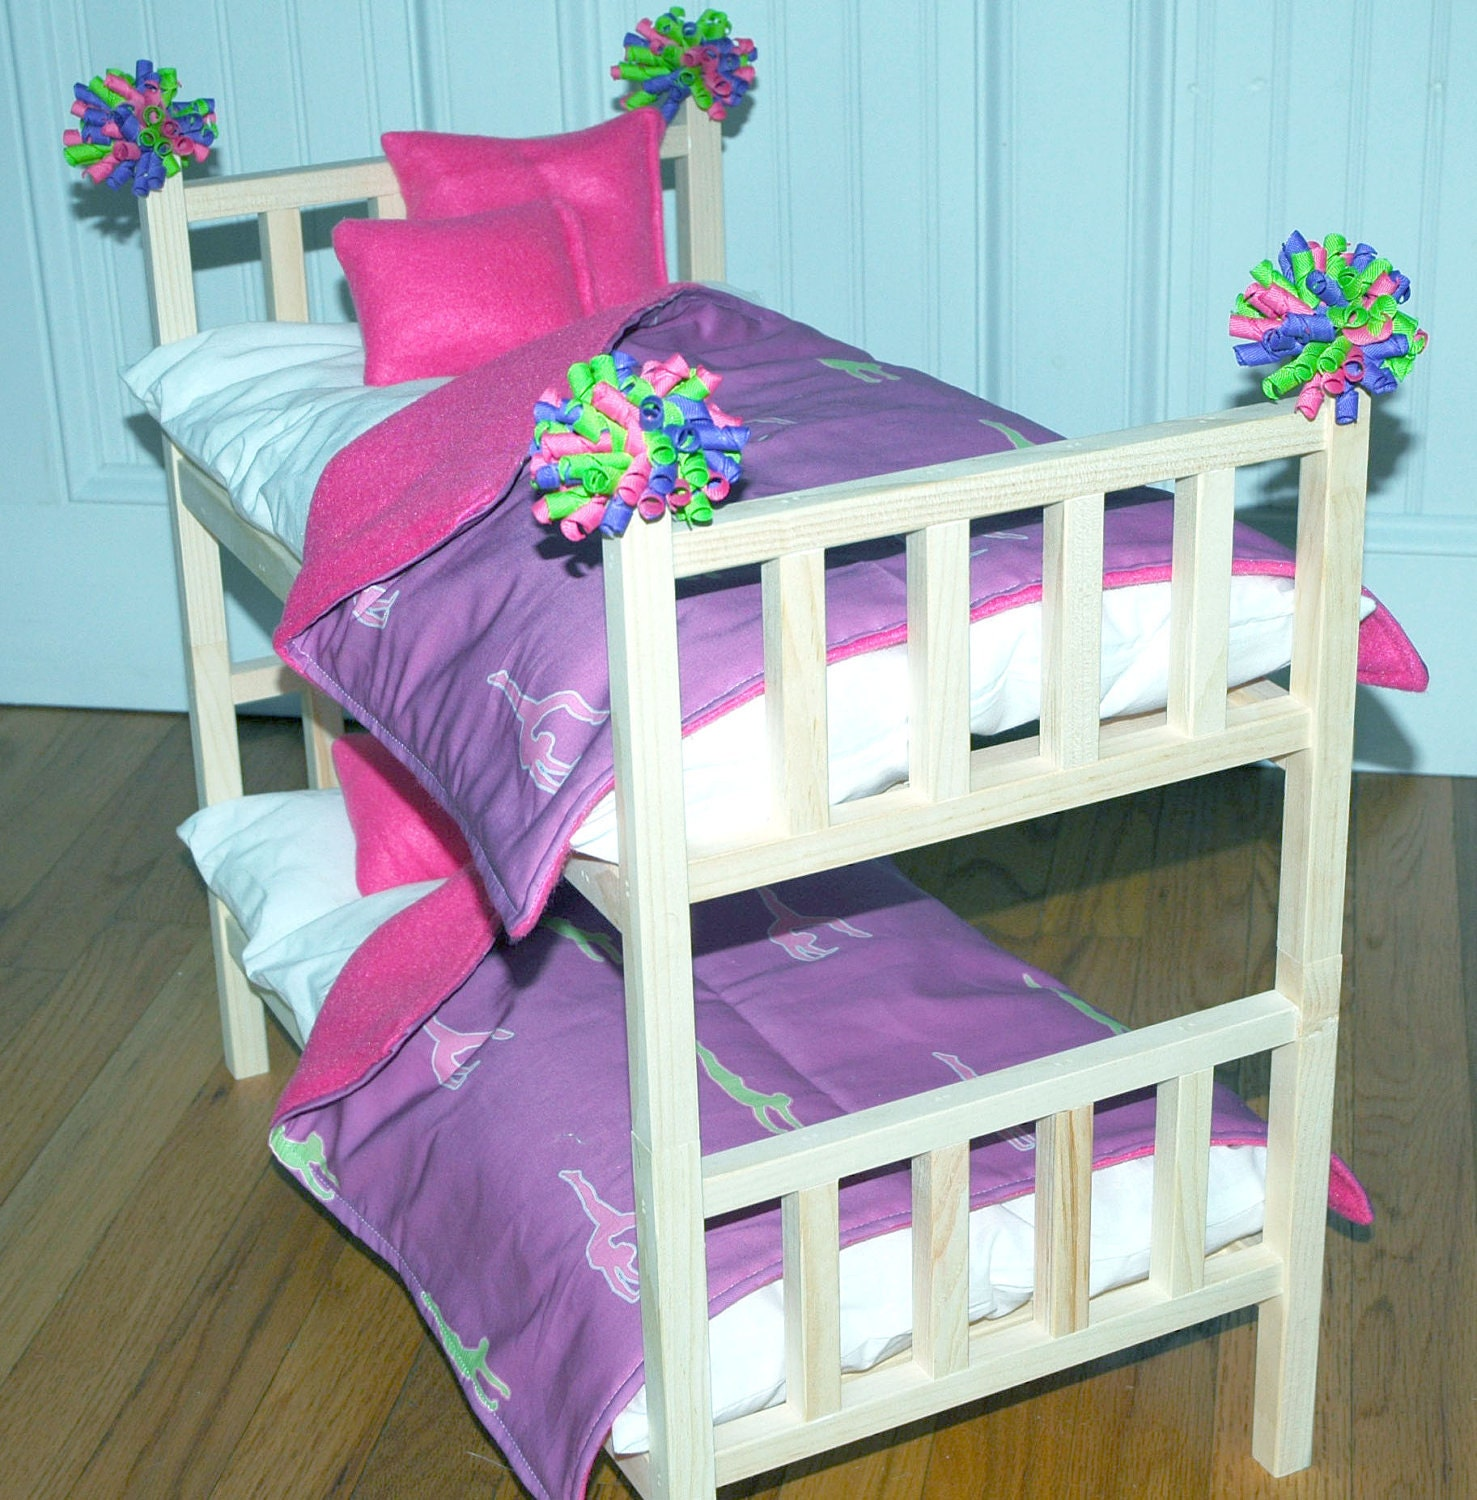 Bunk Bed Dolls: Doll Bed McKenna Bunk Bed With Gymnastics Bedding Fits